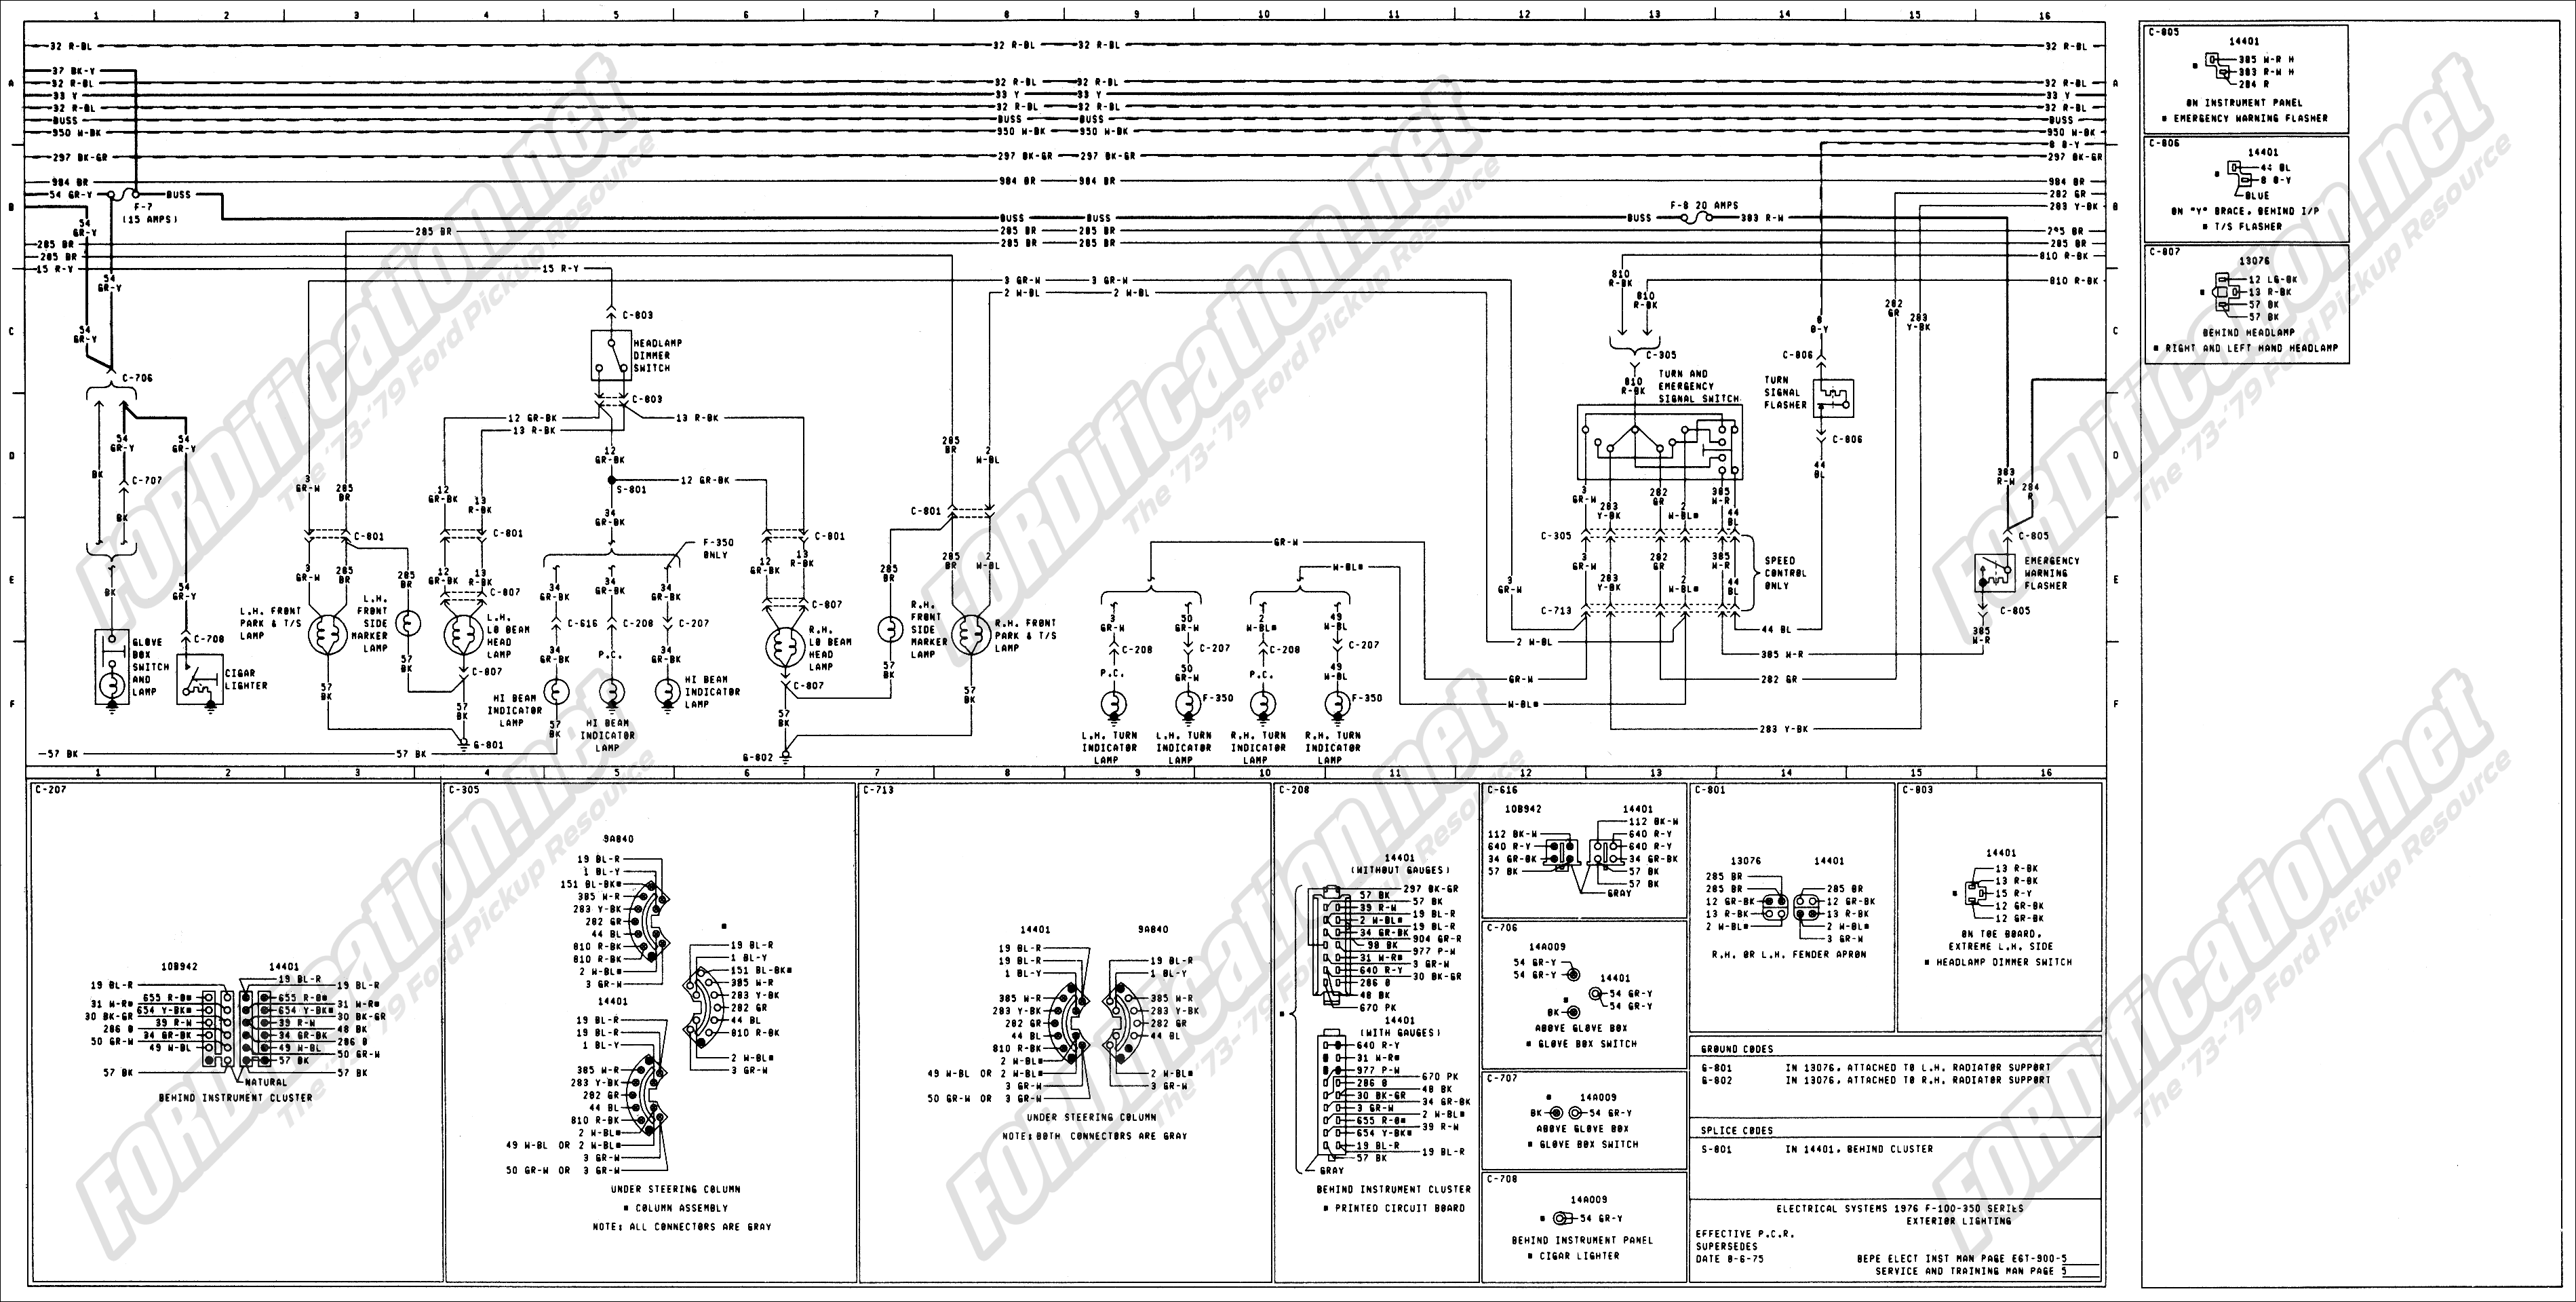 1968 Ford F100 Wiring Diagram Stereo Reveolution Of 1956 Corvette 76 F 150 Diagrams For Another Blog About U2022 Rh Twosoutherndivas Co